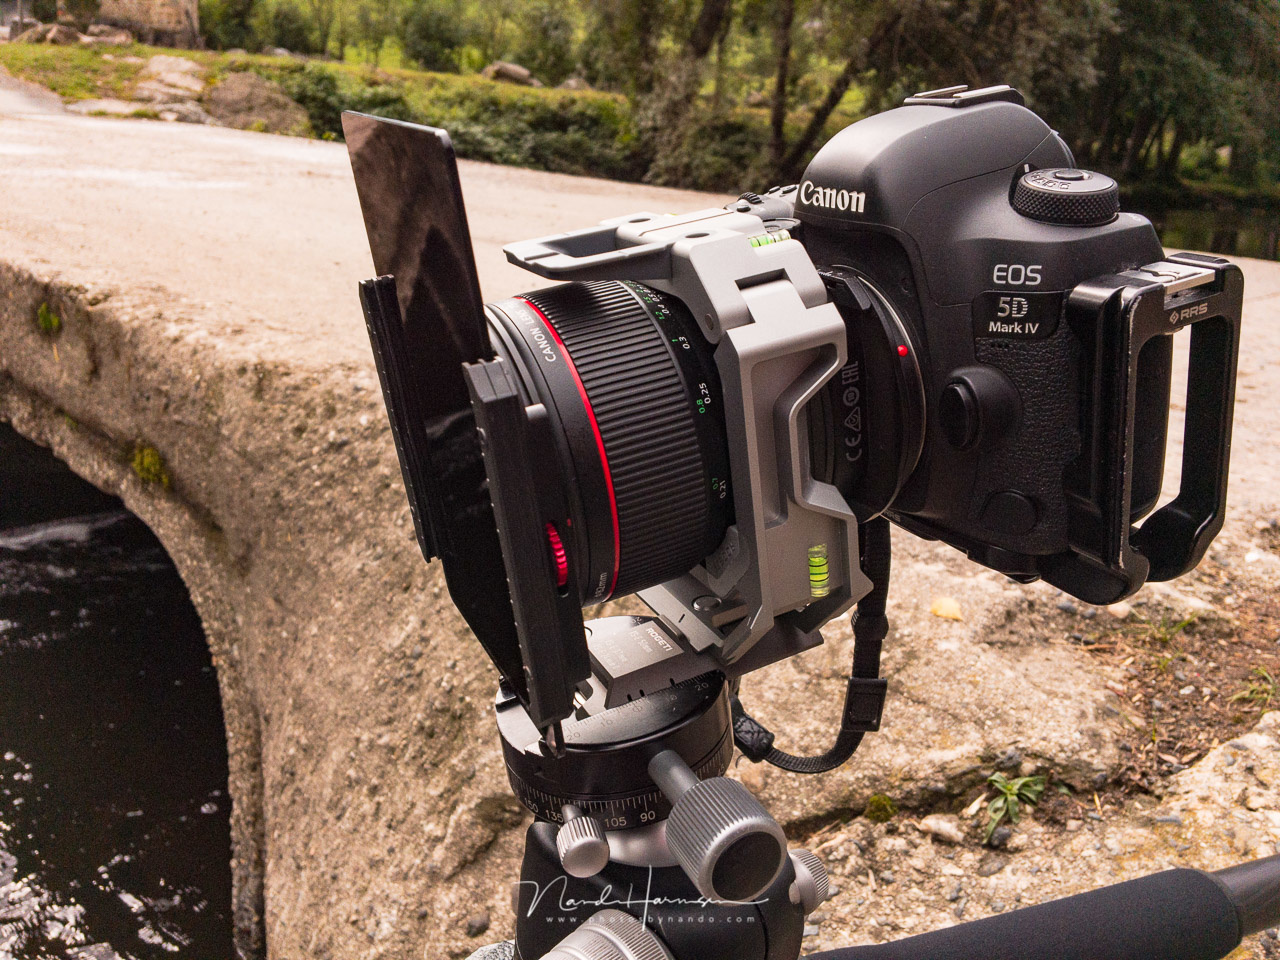 Shooting panoramas with the tilt-shift lens and the Rogeti TSE frame is fun. Although you have to level the camera, you can easy tilt the camera up or down without any problem, Just make sure it is kept horizontal.